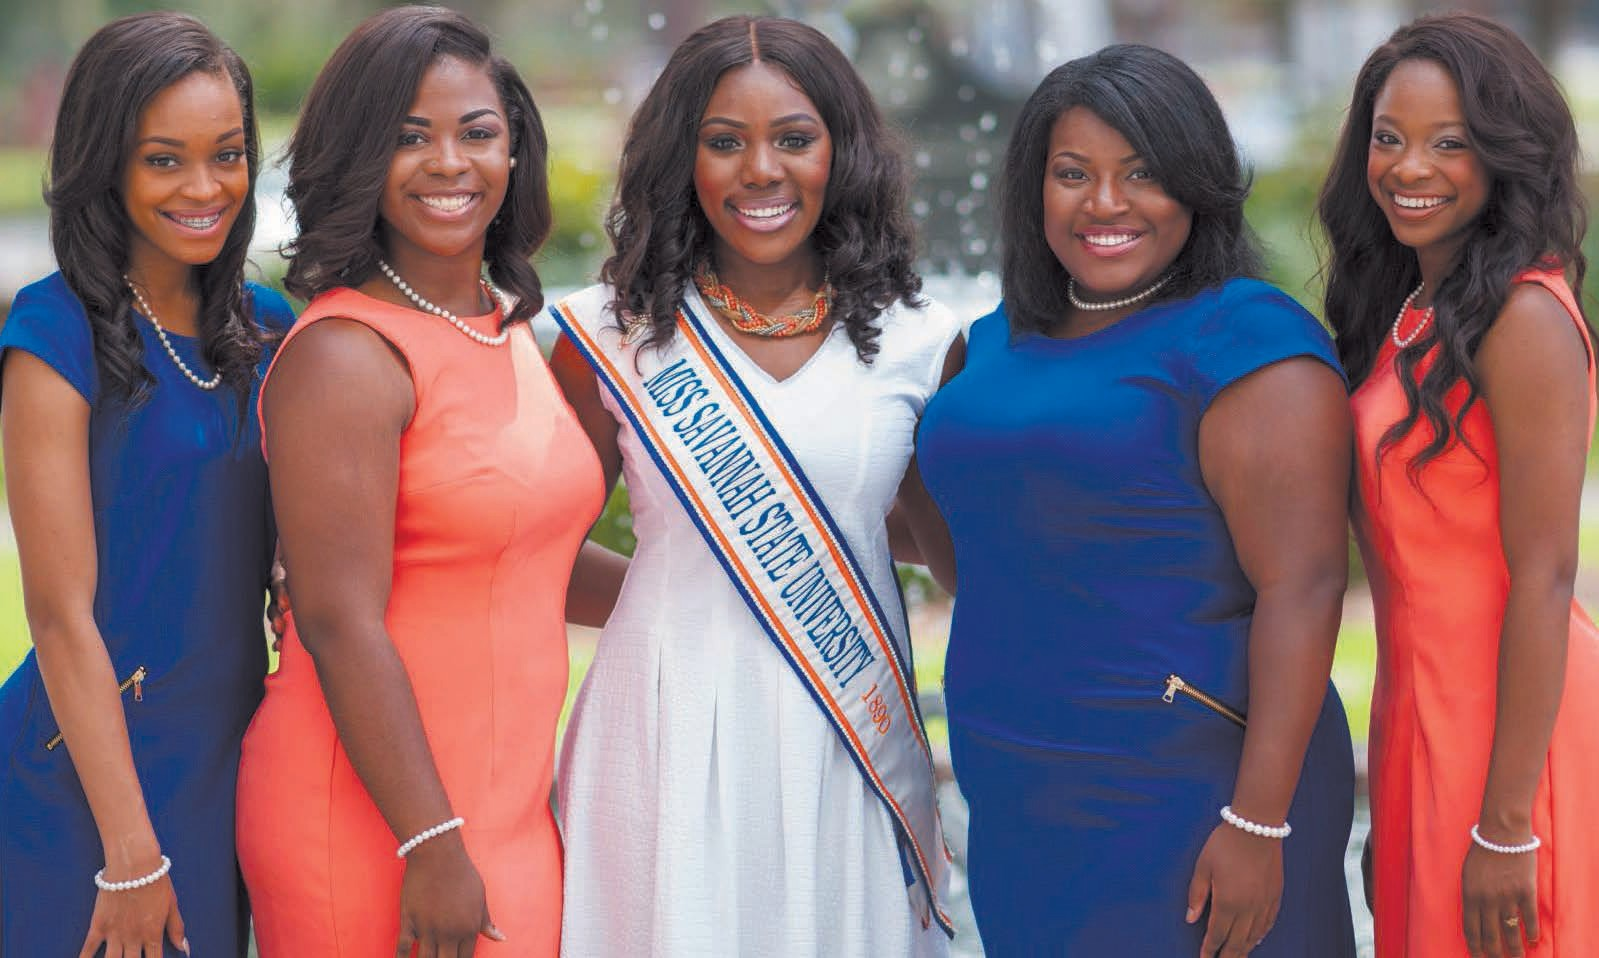 Queen and court (left to right: Miss Freshman, Miss Junior, Miss Savannah State University, Miss Senior, Miss Sophomore)